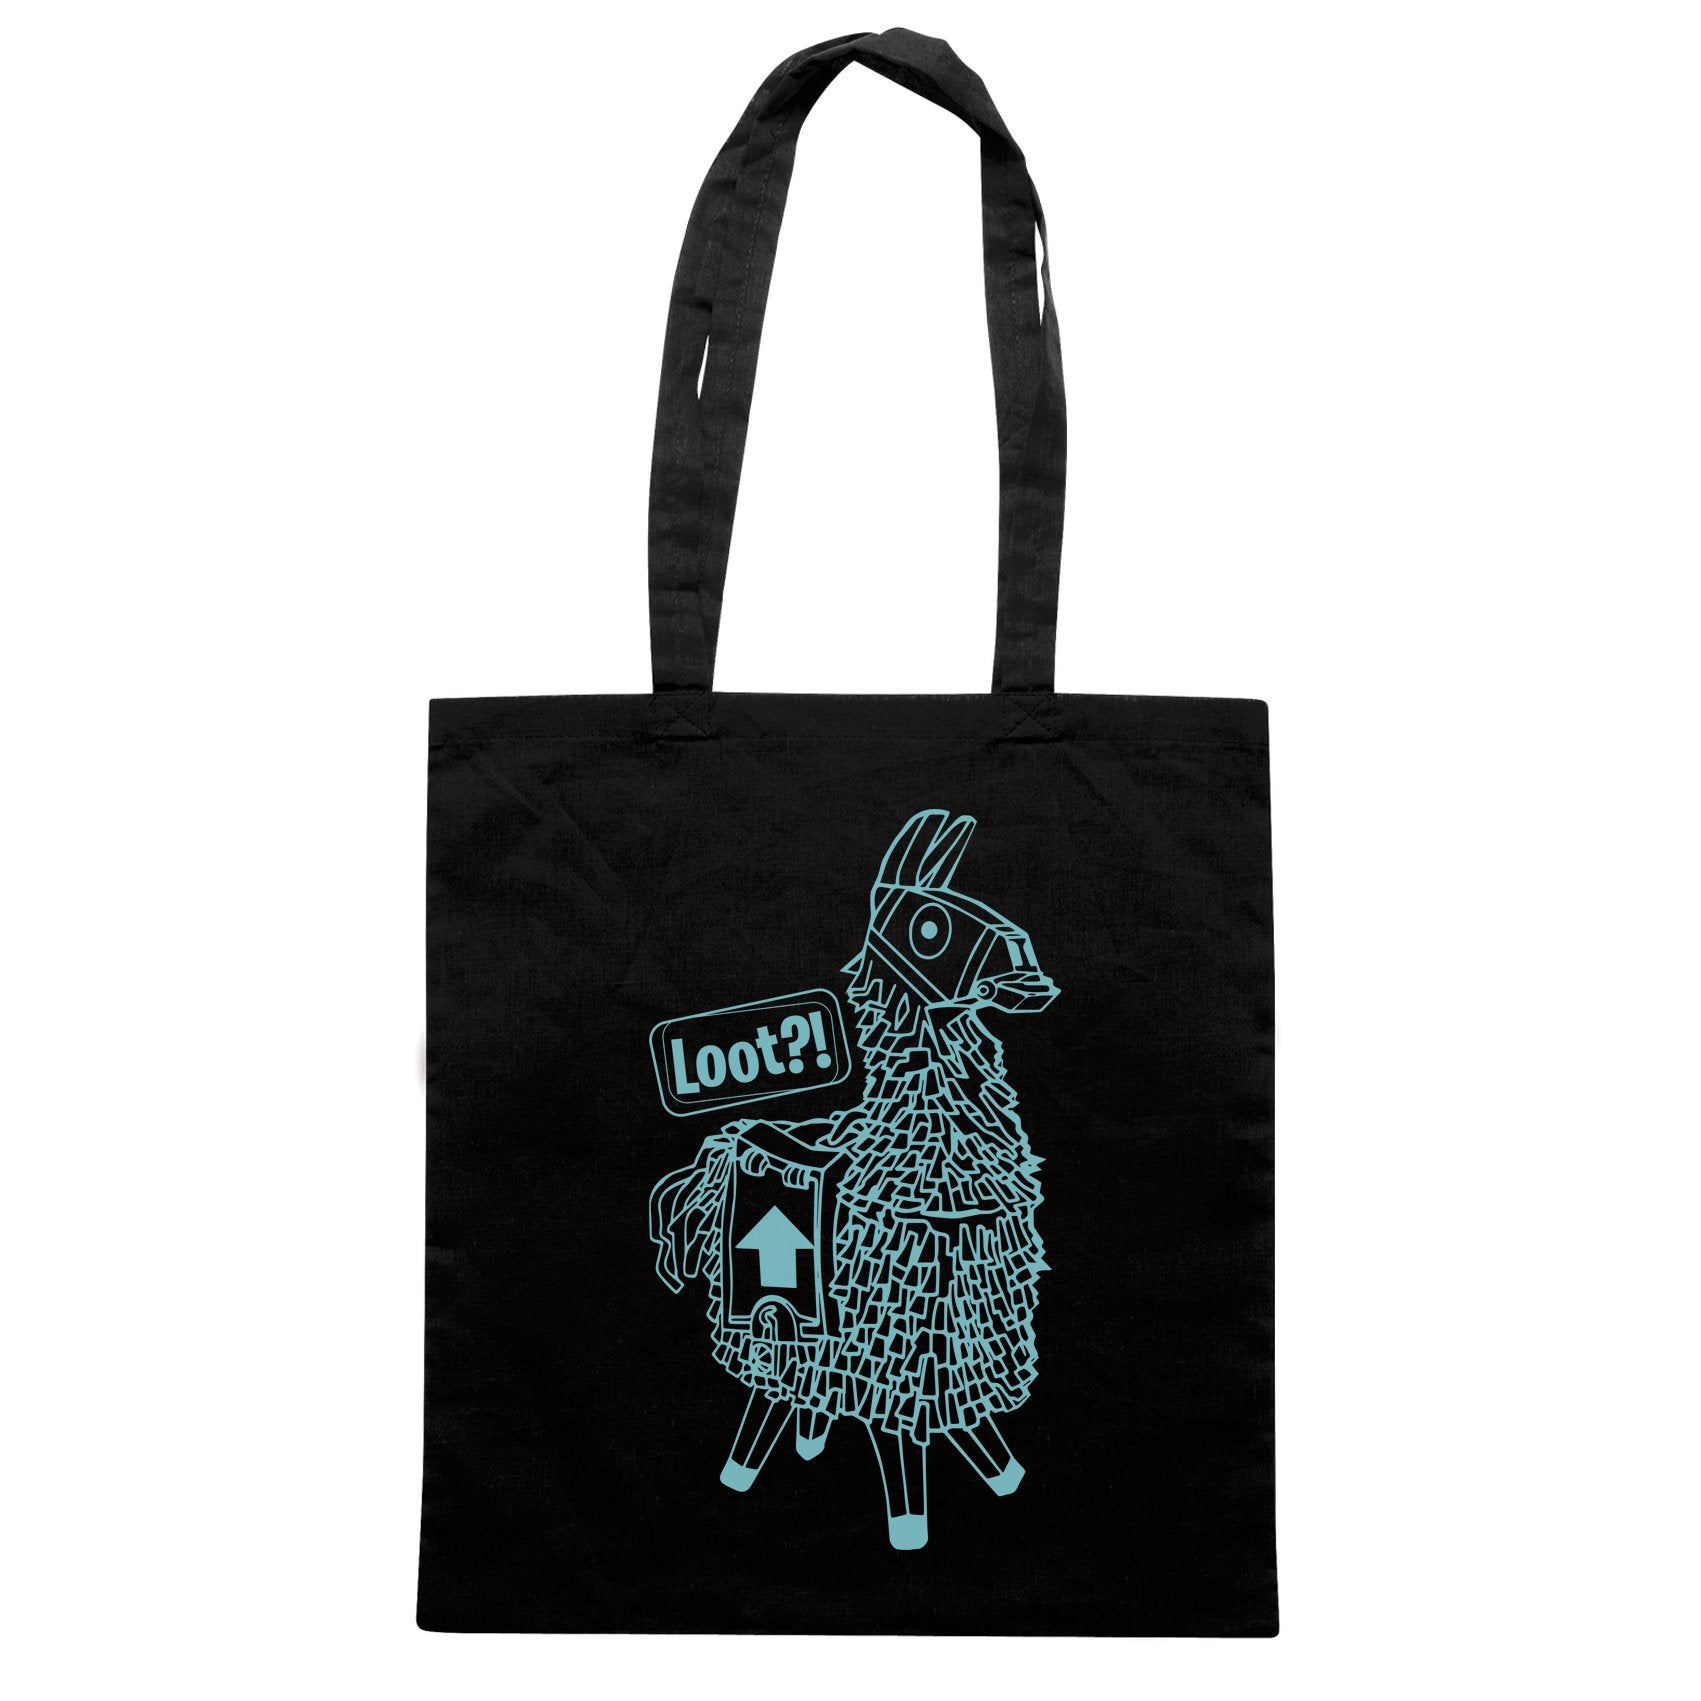 Borsa Llama Loot Play Game Videogame - Nera - GAMES - CUC #chooseurcolor